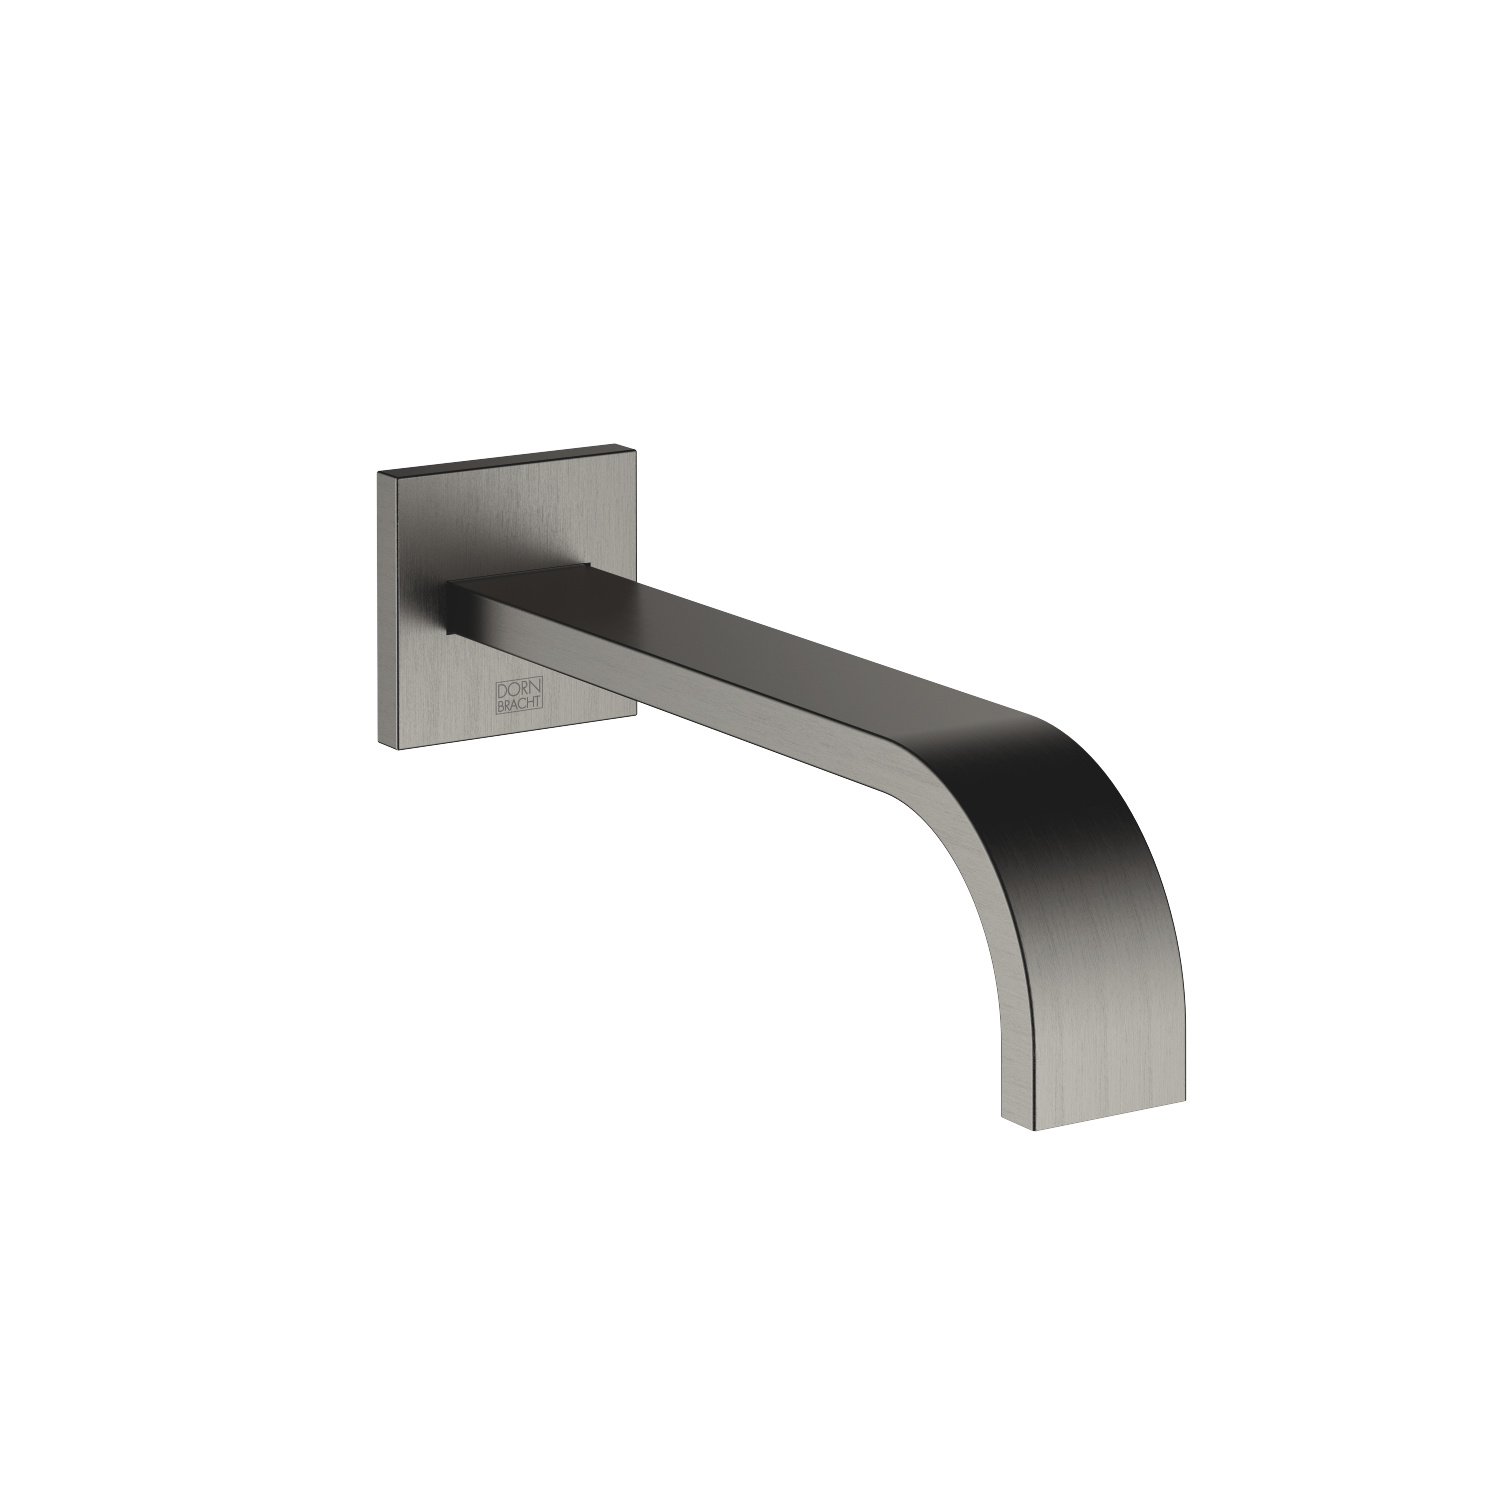 bath spout for wall mounting - Dark Platinum matt - 13 801 782-99